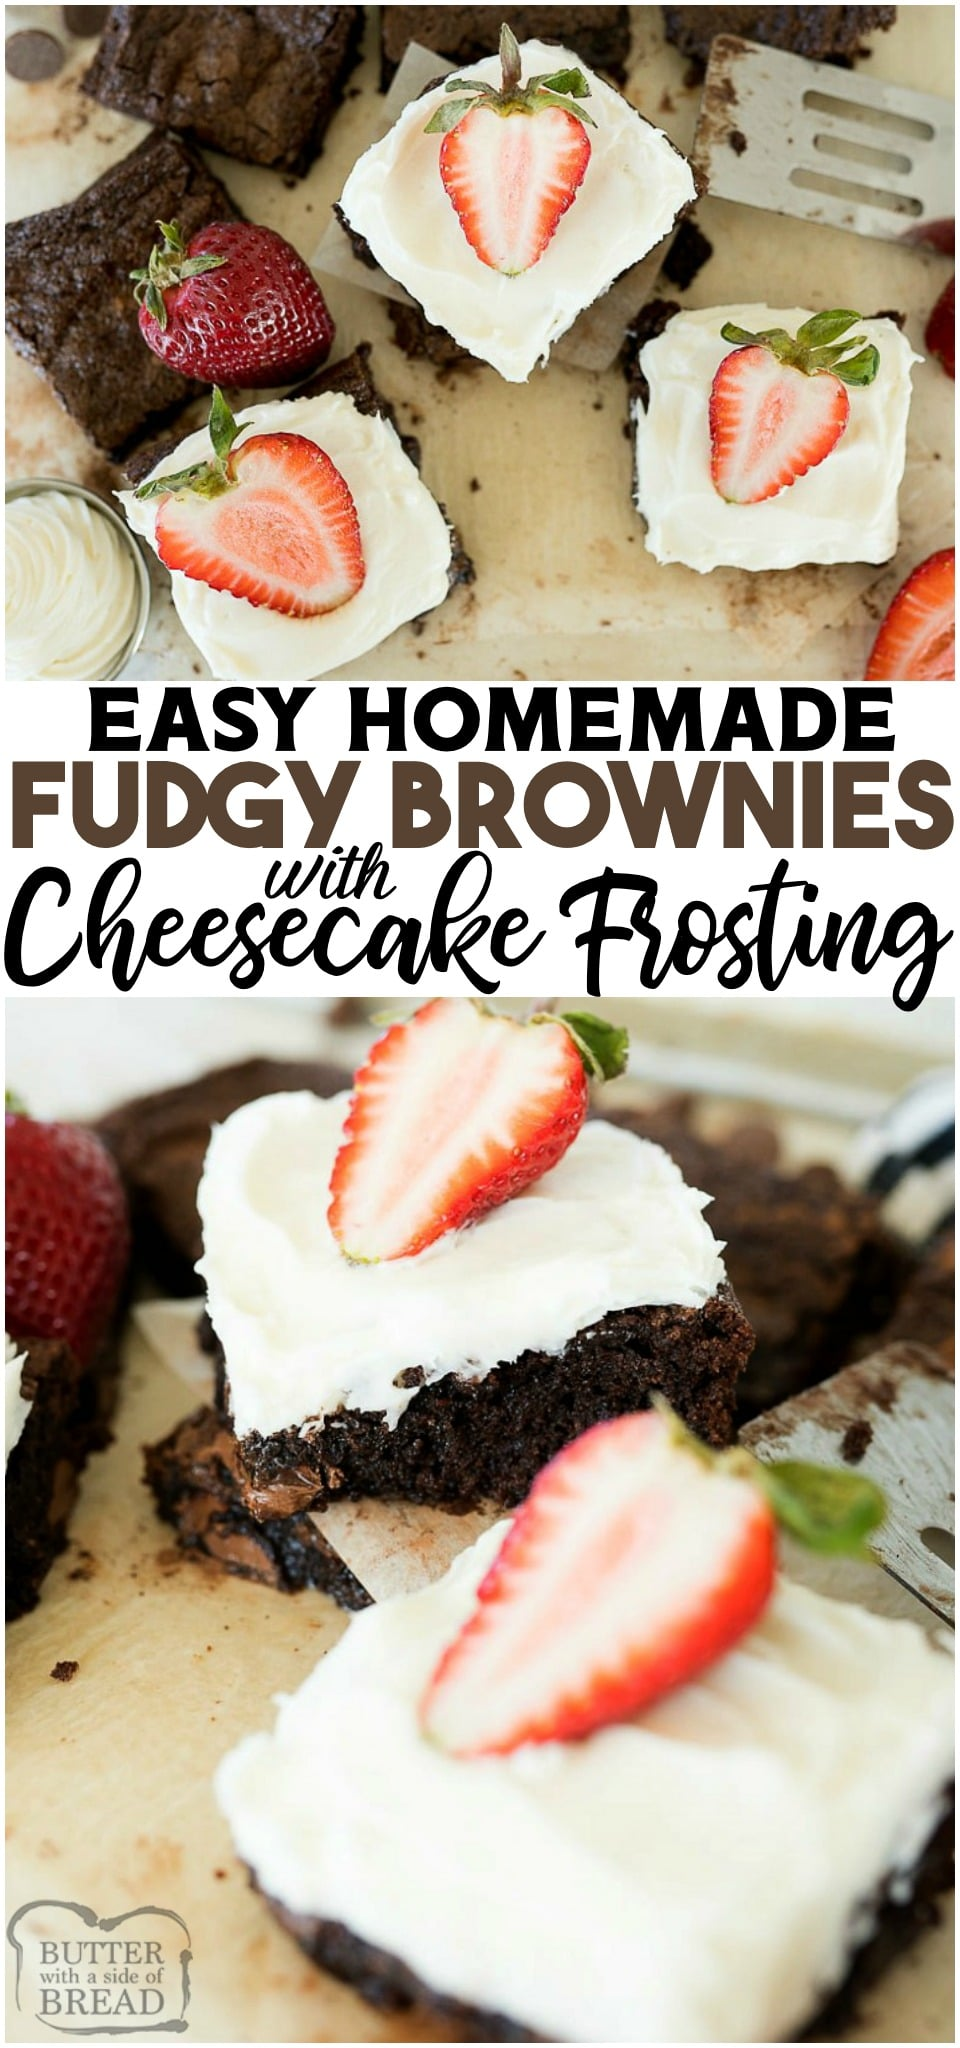 Brownies with a Cheesecake Frosting topped with fresh strawberries for a rich and decadent dessert! Fudgy homemade brownies topped with creamy Cheesecake frosting and fresh strawberries.